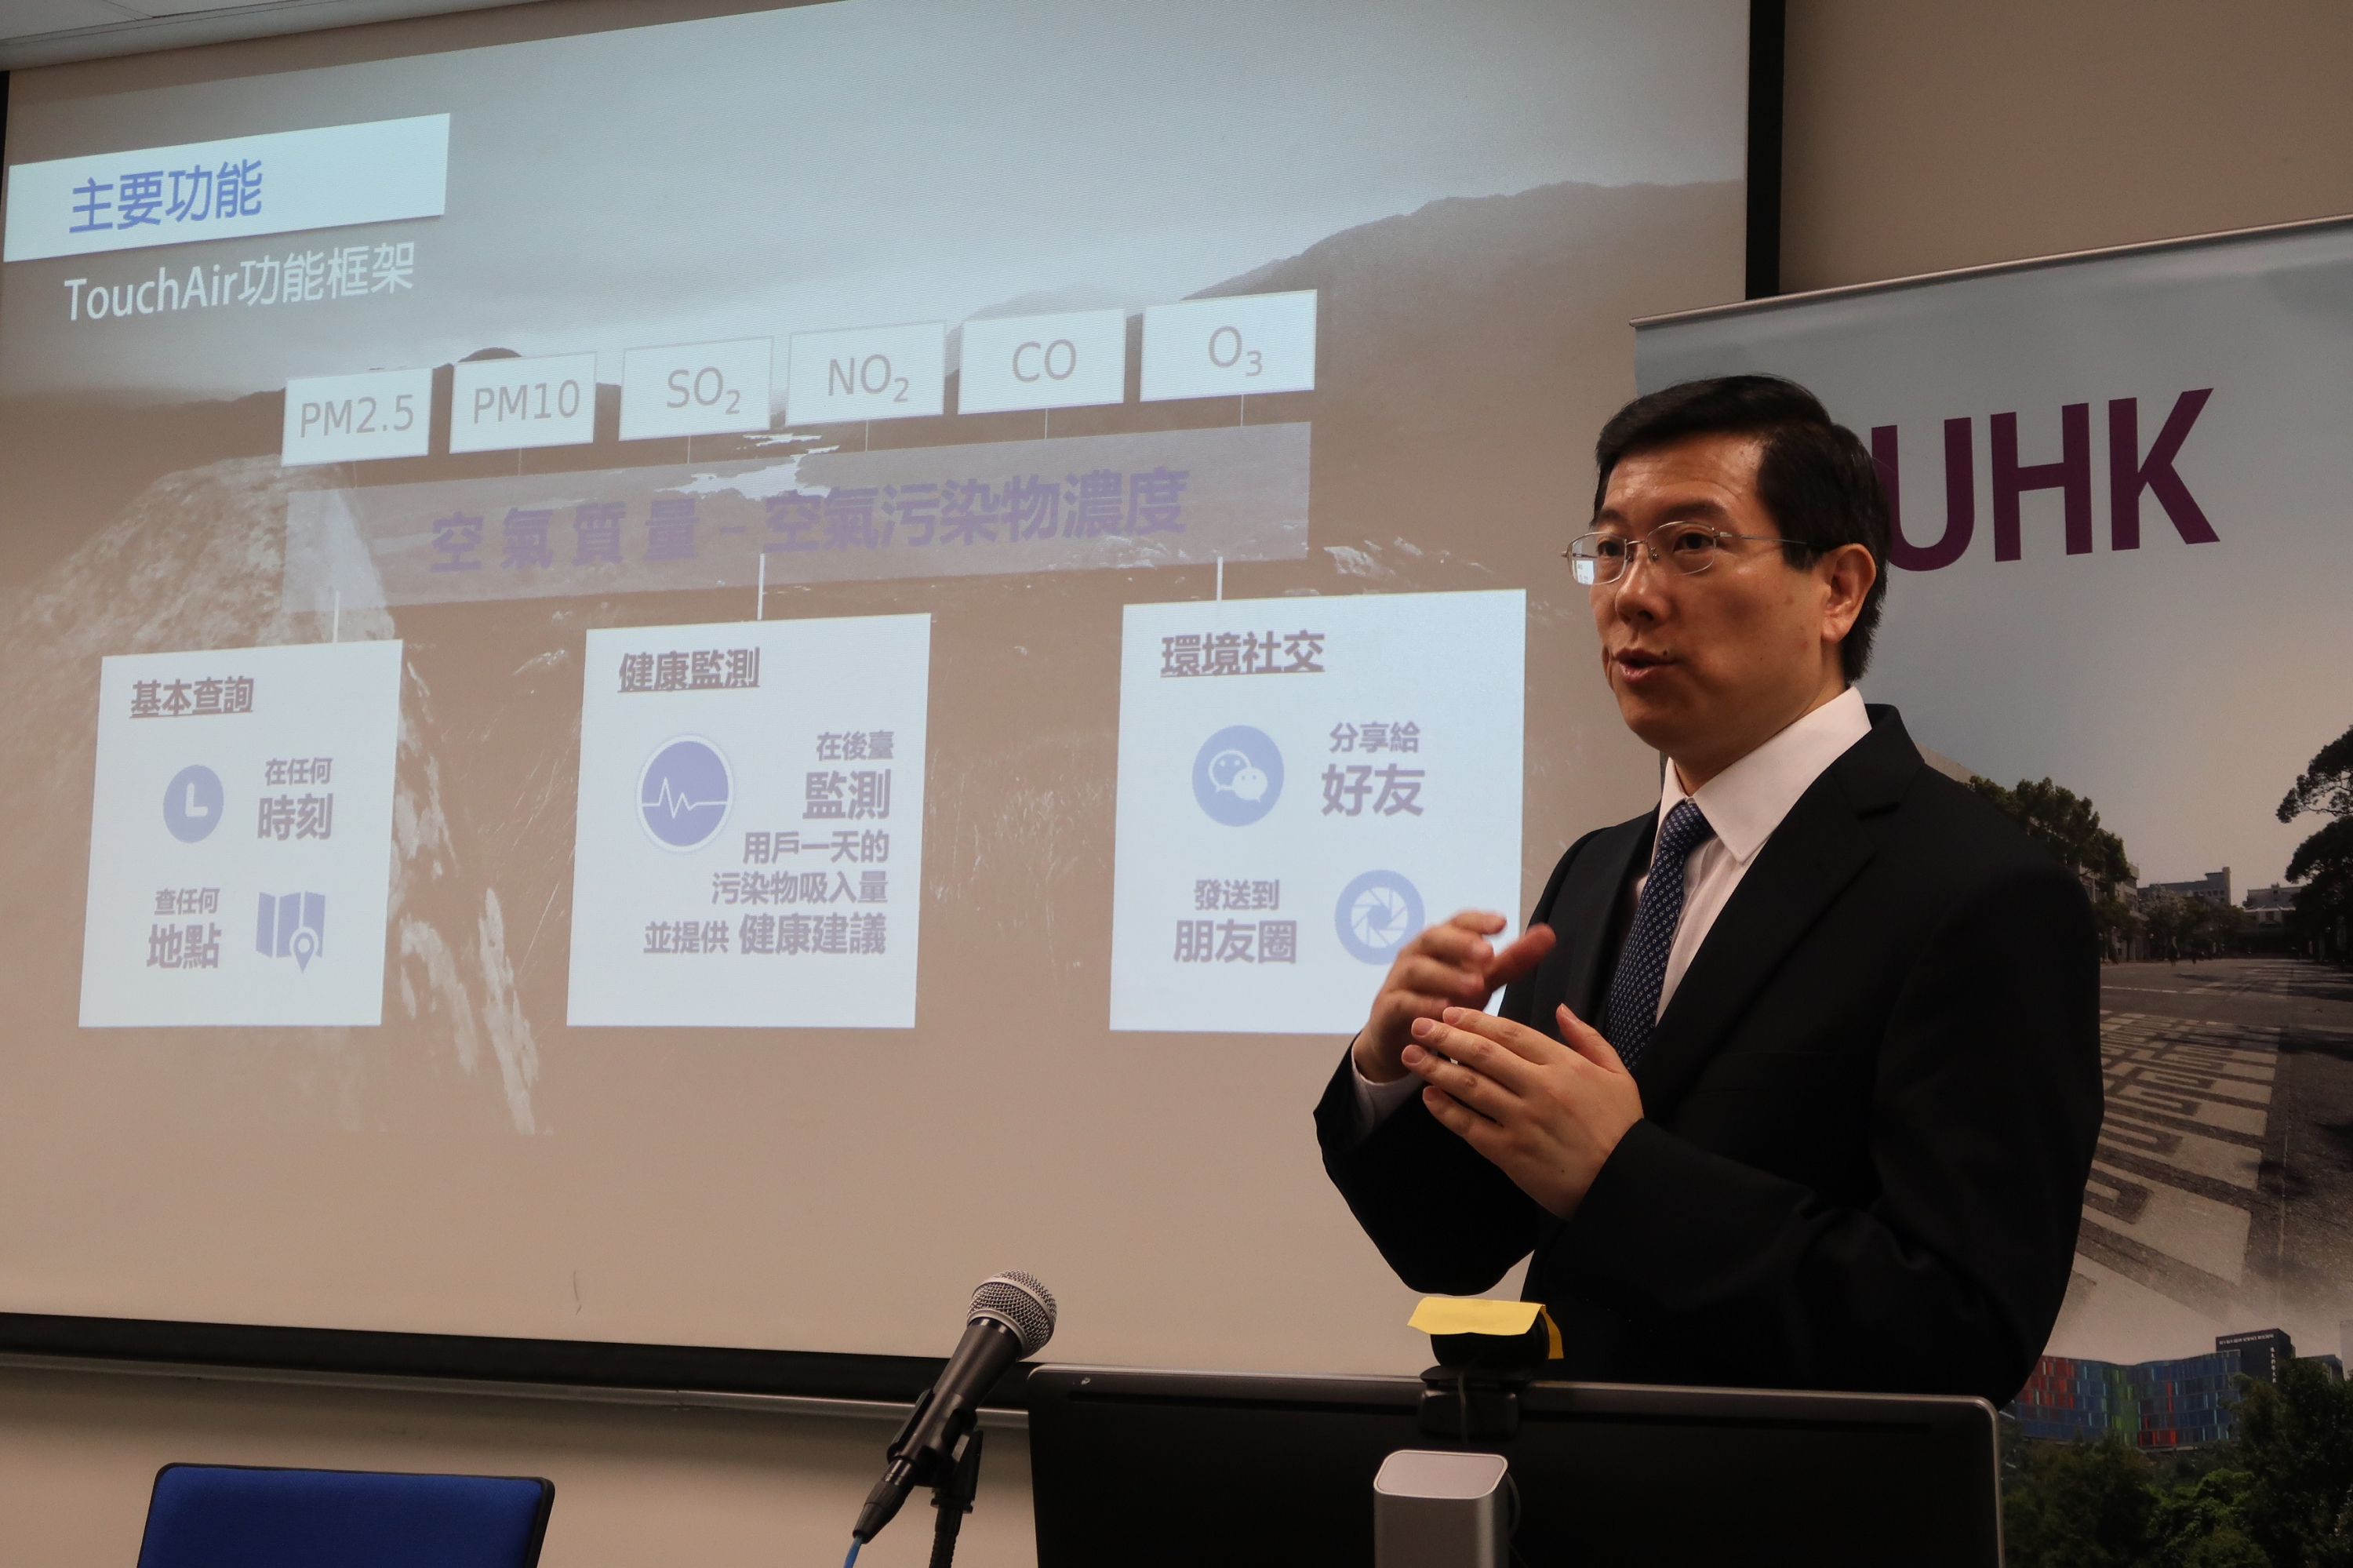 """""""TouchAir"""" uses big data and satellite remote sensing technology to calculate the air quality level at any places in Hong Kong and Mainland China."""